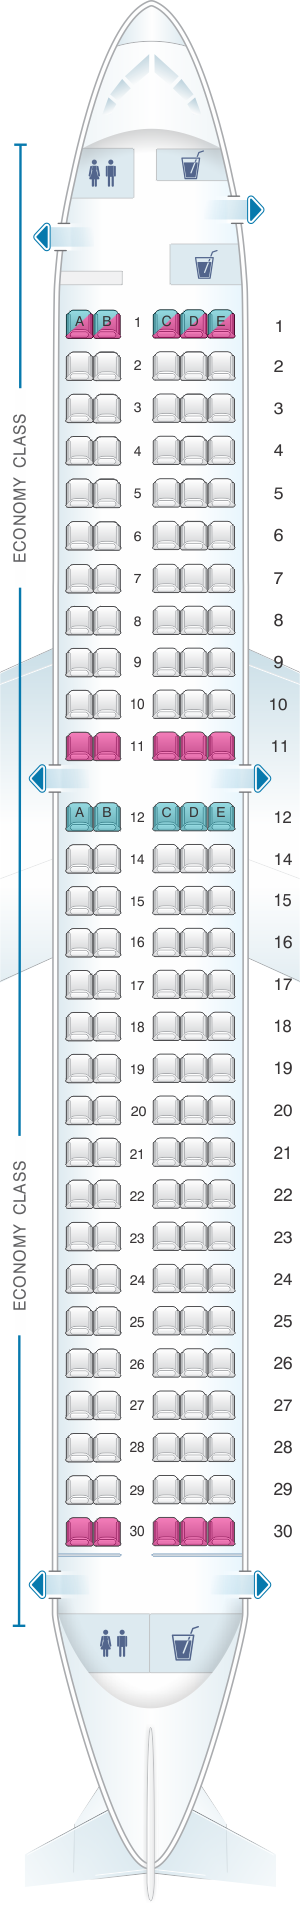 Seat Map airBaltic ardier CS300 | airBaltic | Jetstar ... China Southern Seat Map on a380 emirates map, china economy-class airline seat configuration, china southern airline, china eastern airlines seat map, china southern hotels, china southern route map, china airline a330-200 seat map for east, china southern business class, china southern frequent flyer, china map airplane, air china seat map,